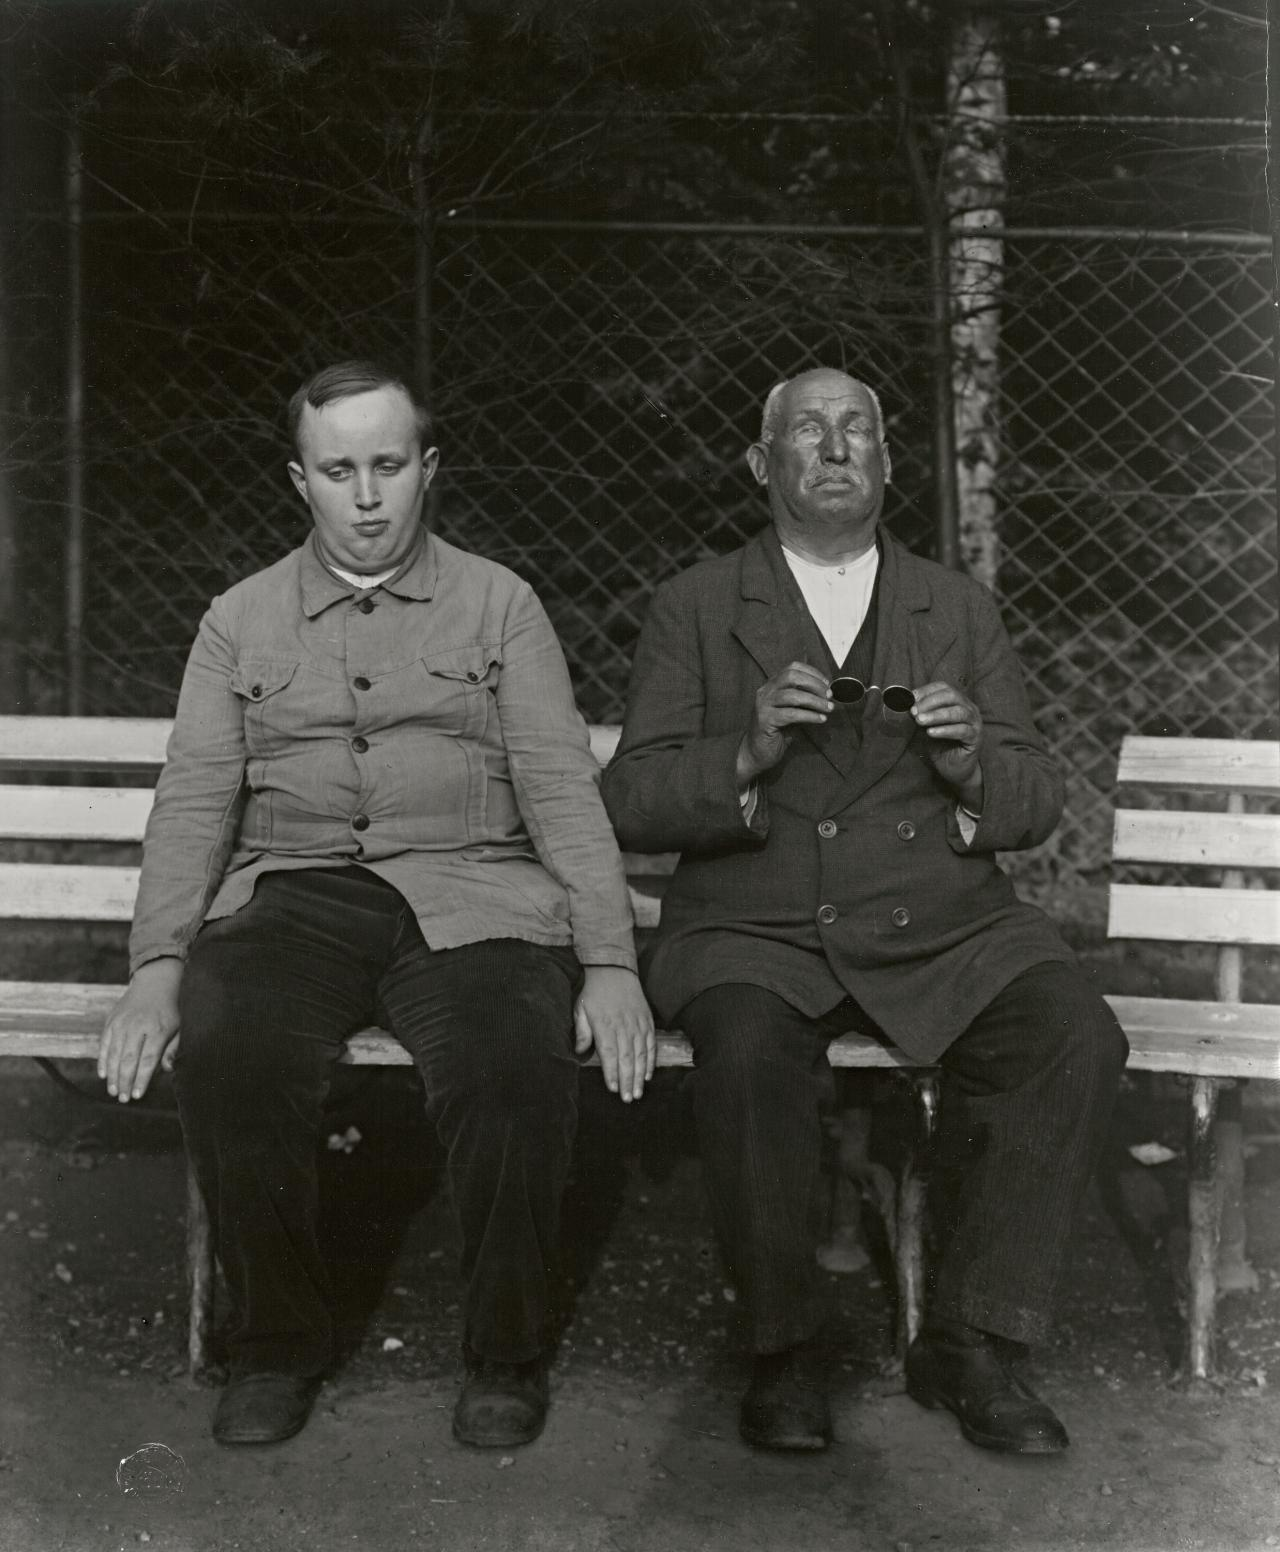 Inmates of a home for the blind, Duren, 1930